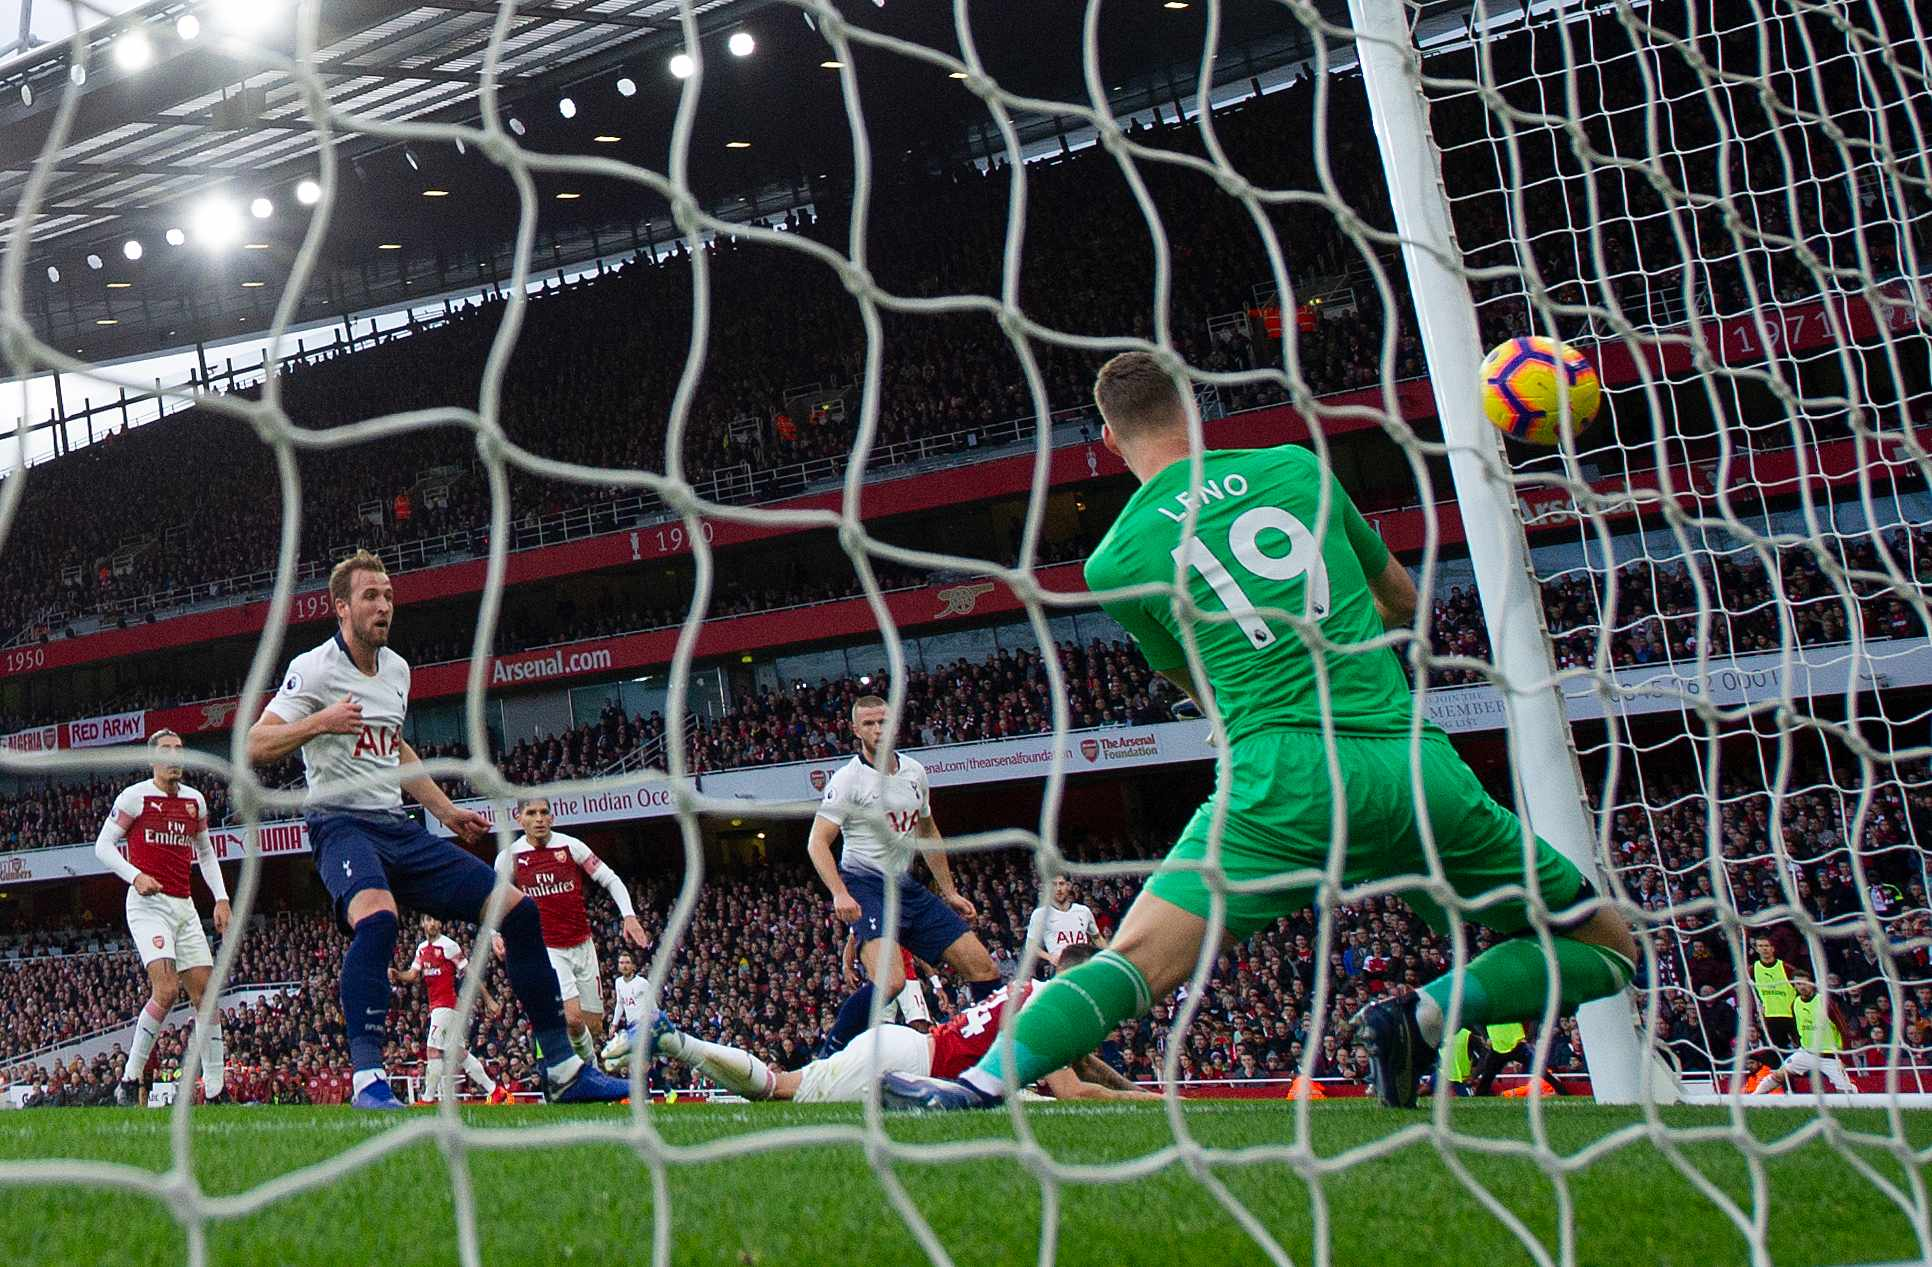 LONDON, ENGLAND - DECEMBER 02: Goalkeeper Bernd Leno of Arsenal allows Eric Dier's header to sneak into the near post for Tottenham's equaliser during the Premier League match between Arsenal FC and Tottenham Hotspur FC at the Emirates Stadium on December 2, 2018 in London, United Kingdom. (Photo by Visionhaus/Getty Images)